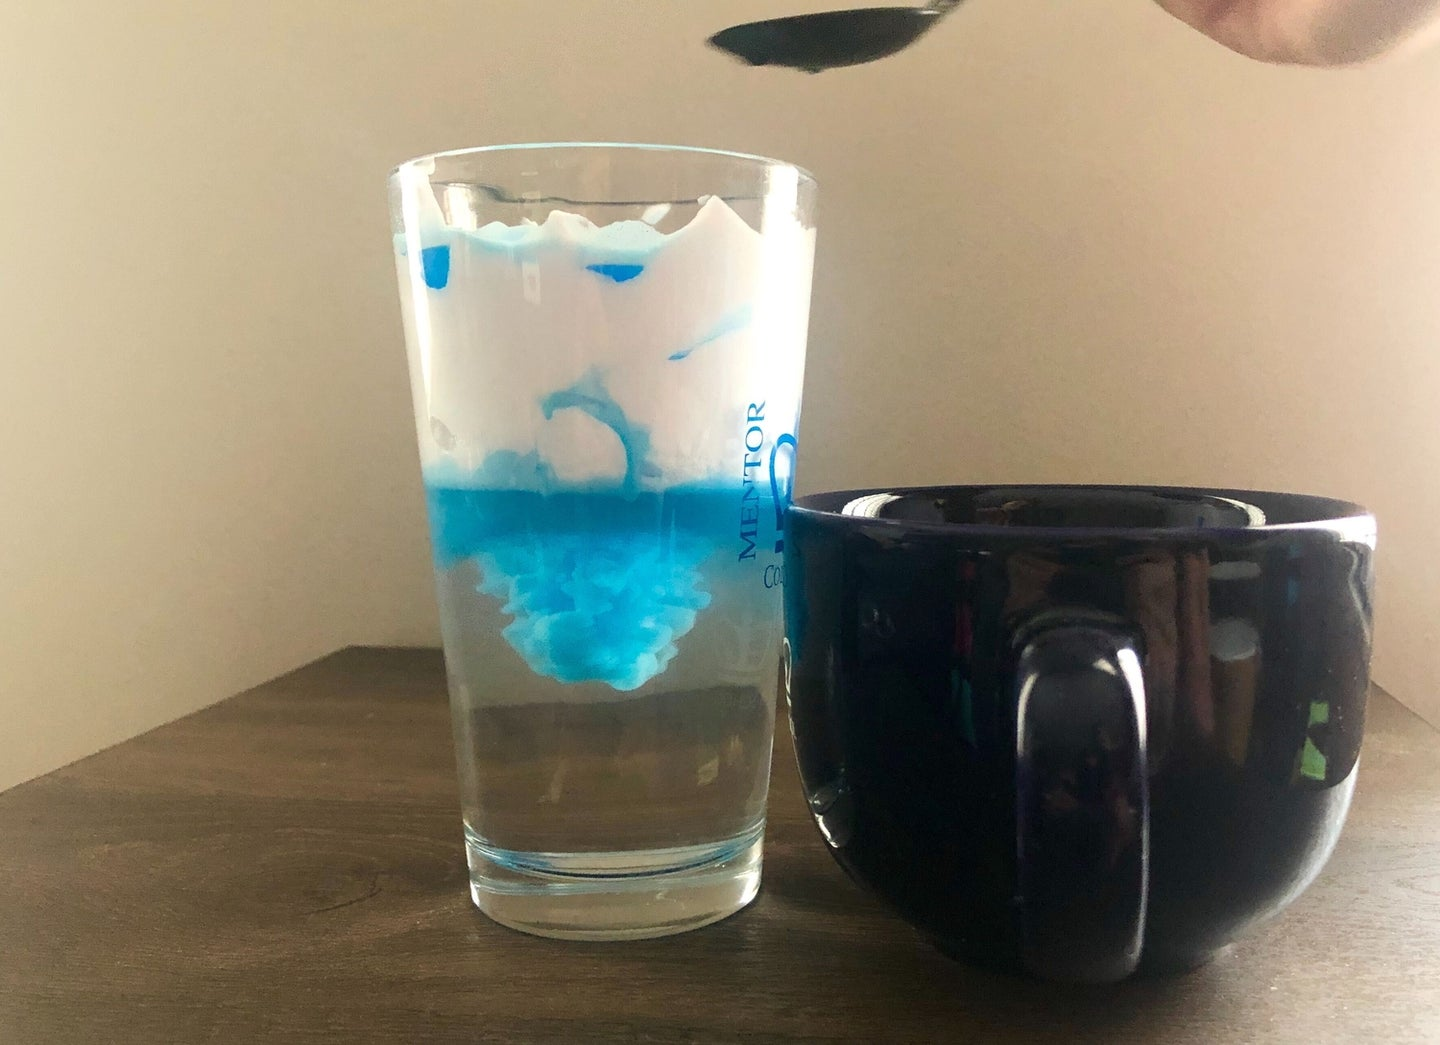 a photo of a person pouring colored water into a glass of shaving cream and water to demonstrate rainfall with a science experiment project creating a storm in a glass